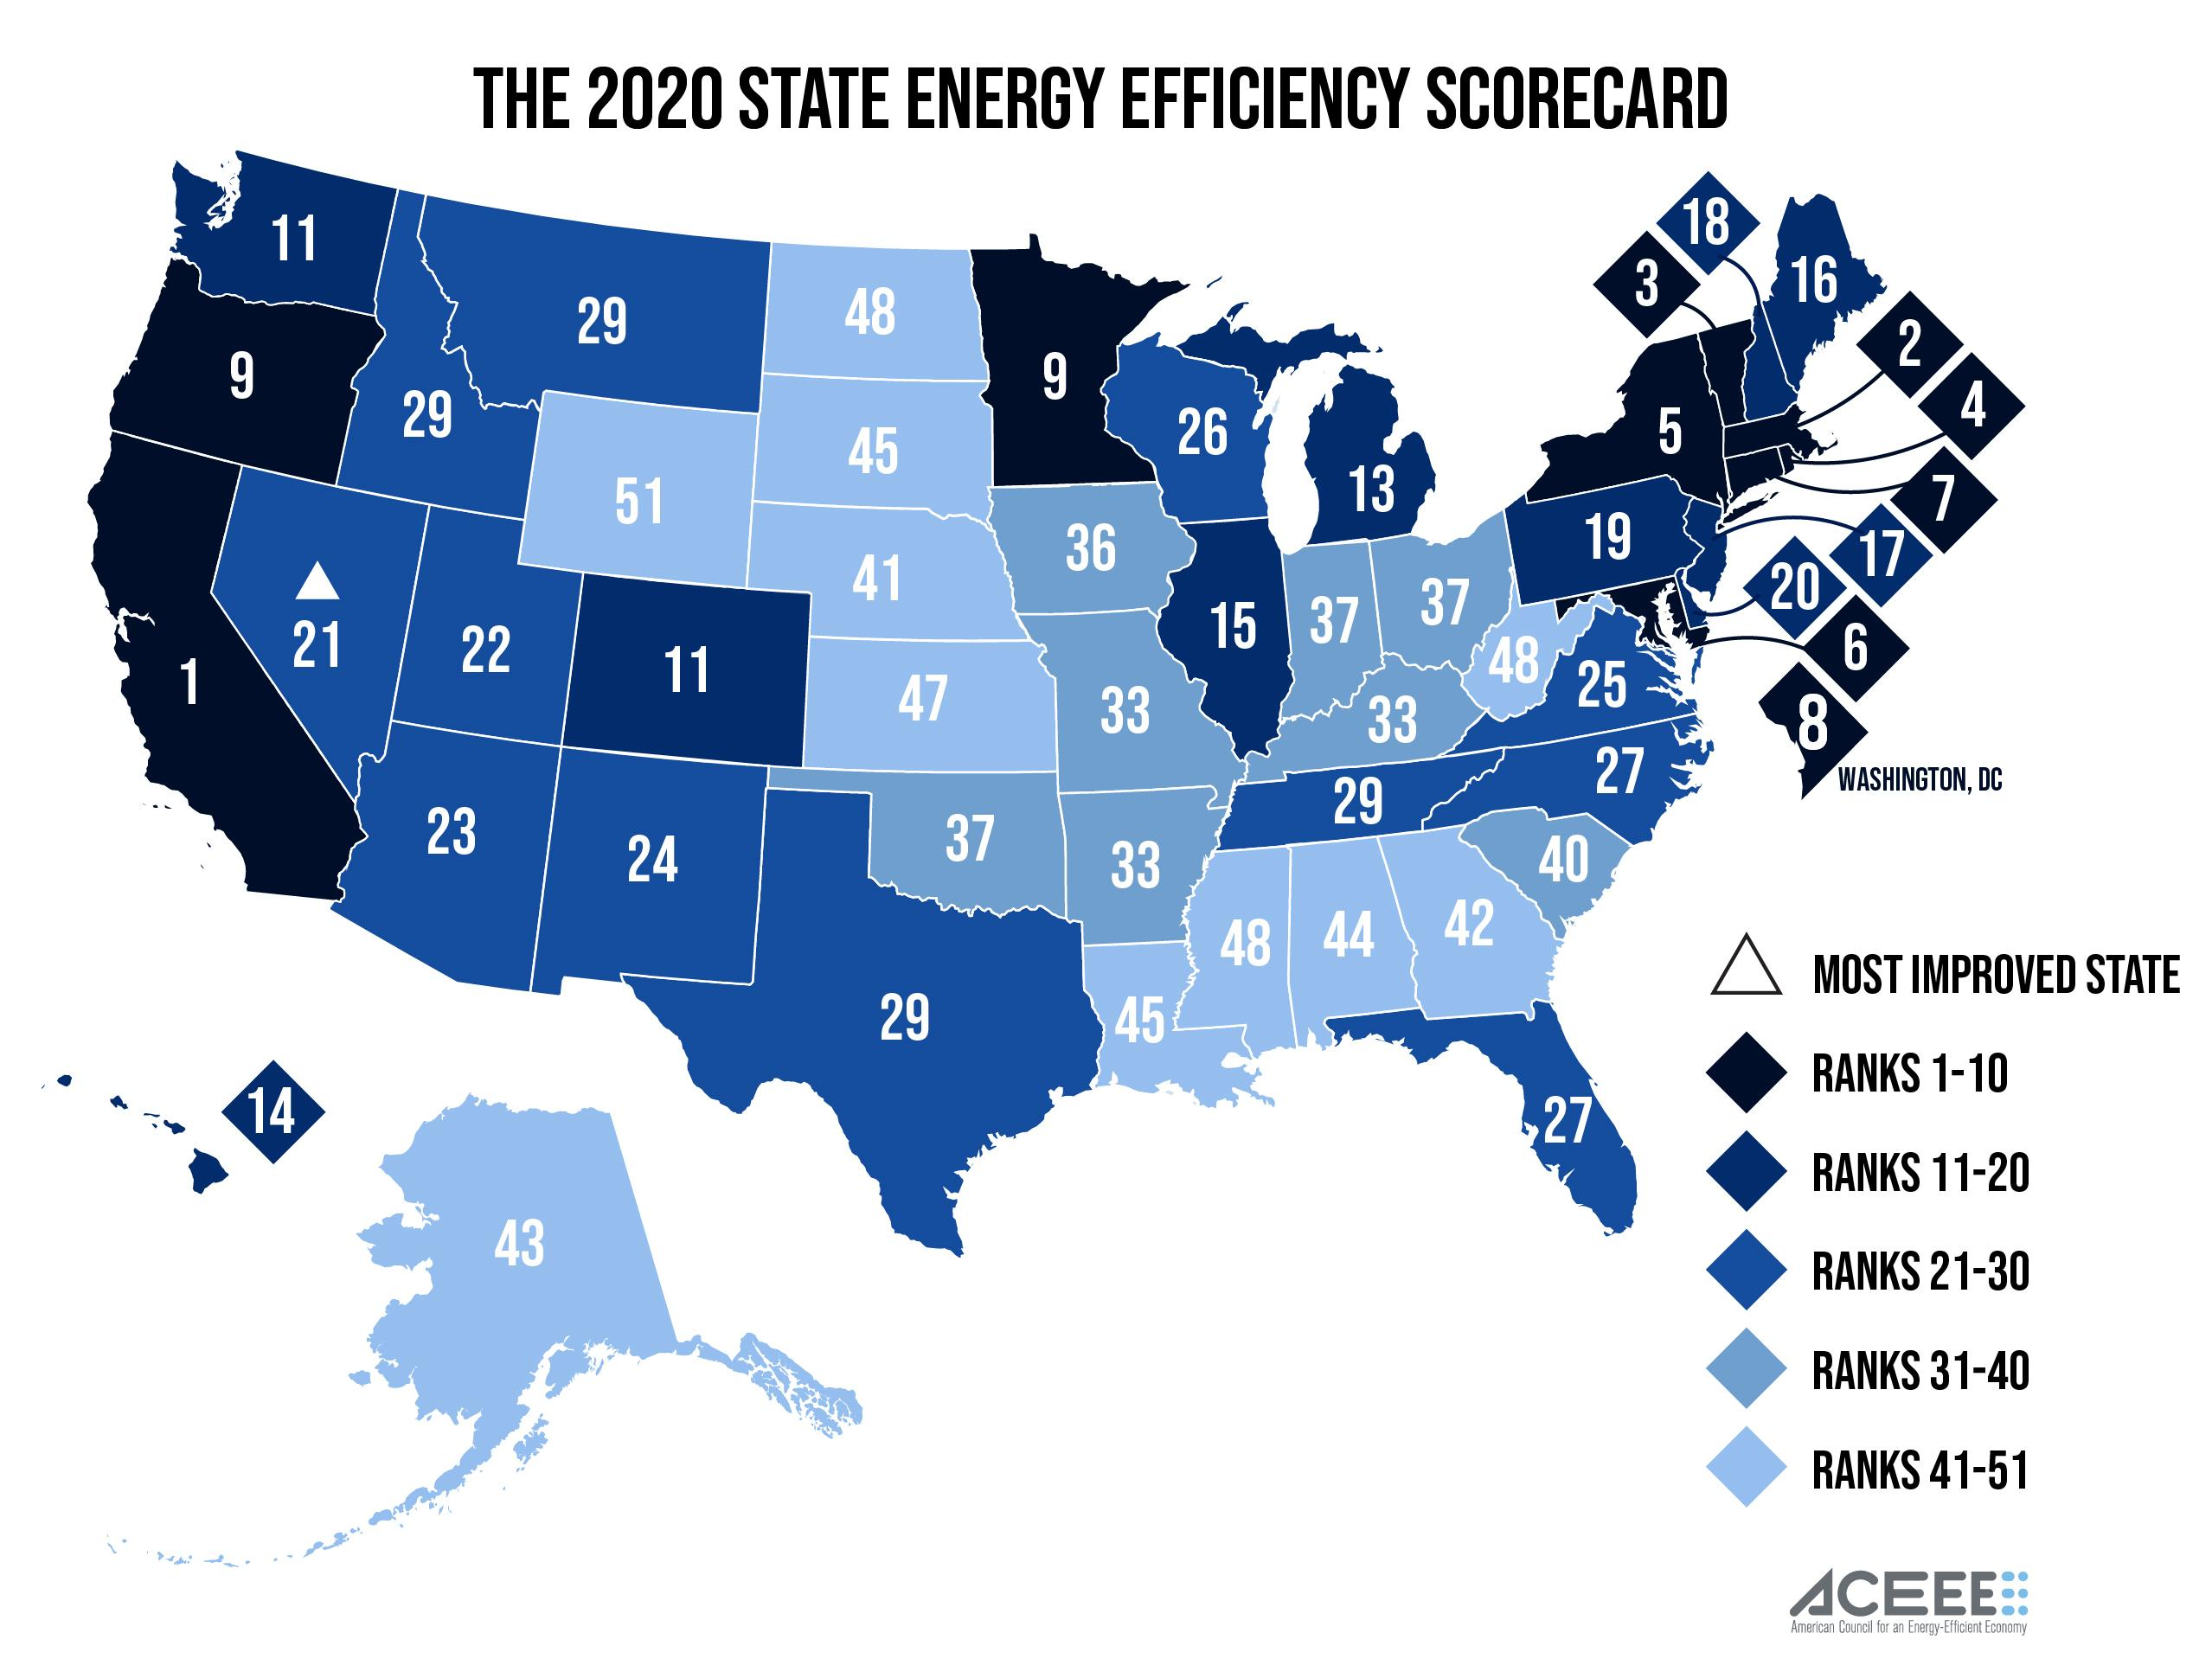 State Scorecard Ranking Map